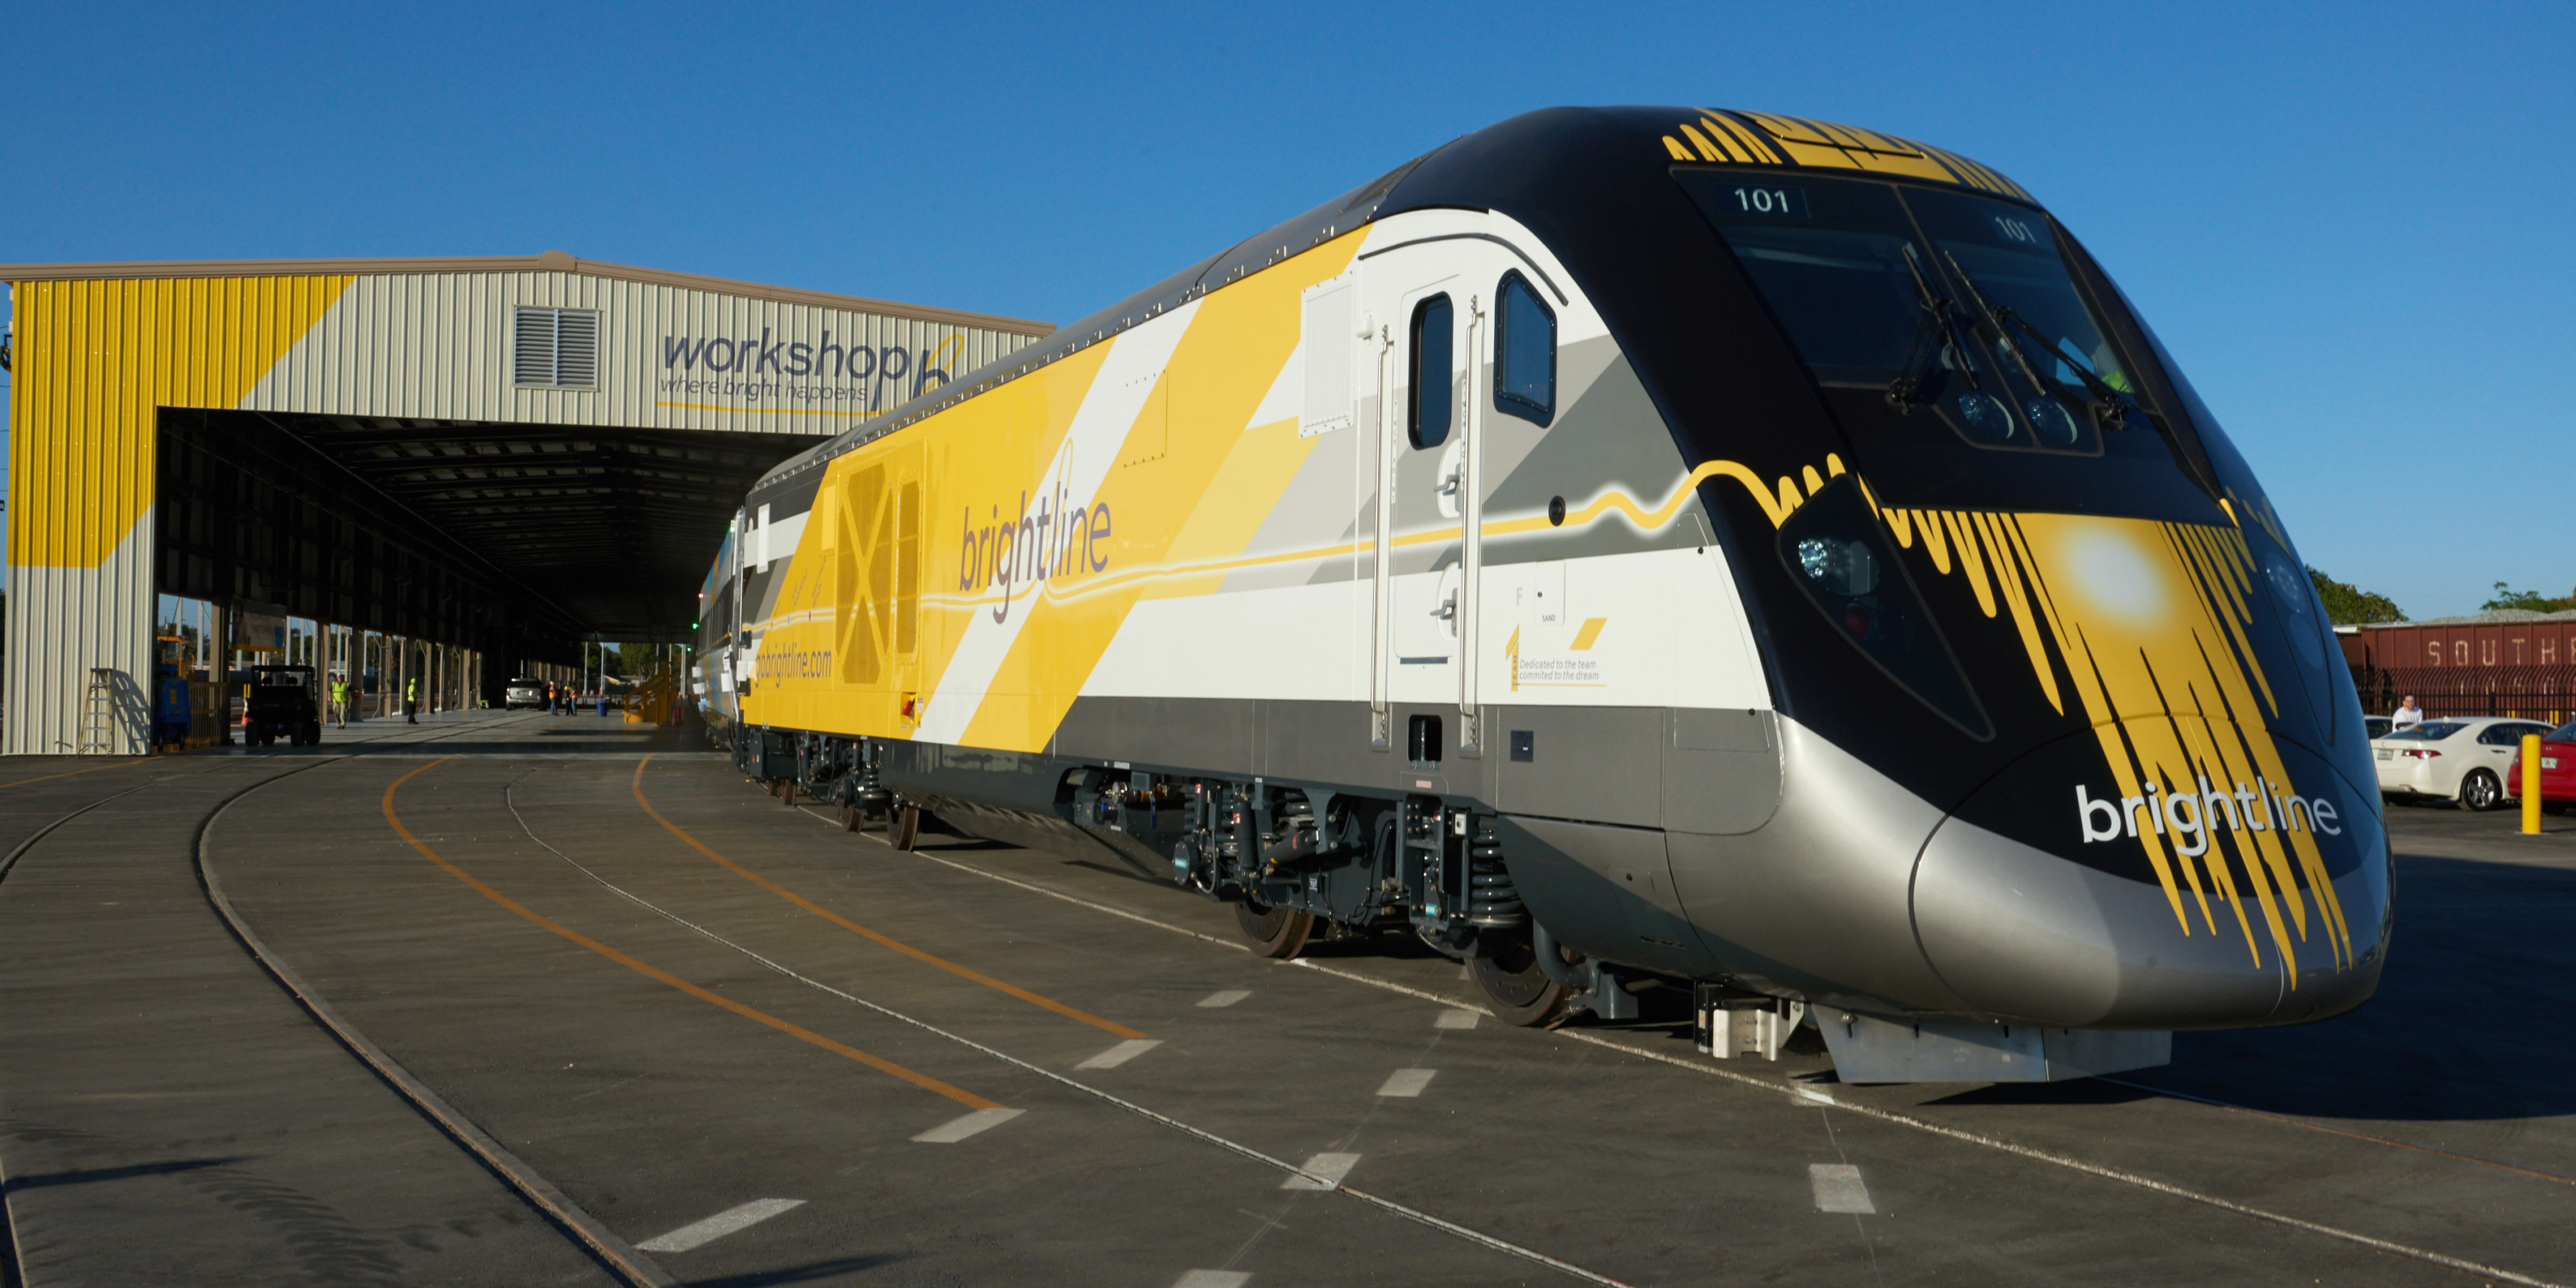 Brightline Reveals First Completed Trainset, Full of Innovations Set ...